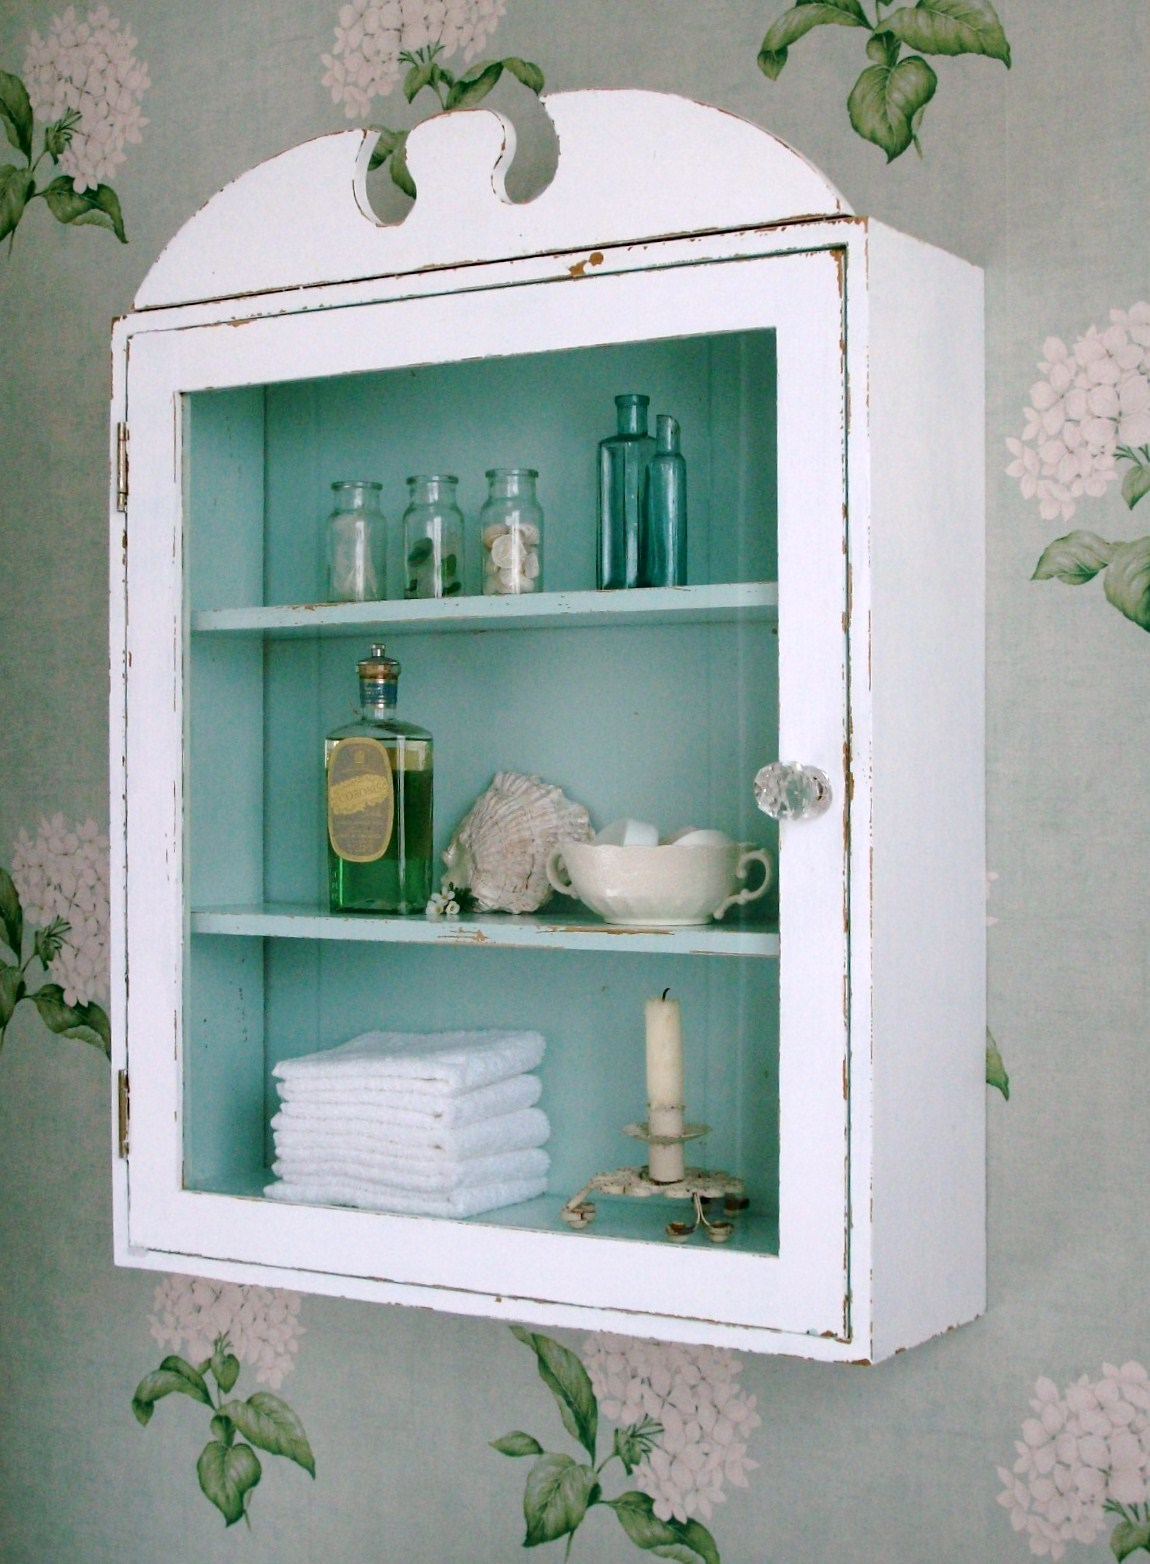 Glass door medicine cabinet image collections glass door design glass medicine cabinet home design ideas and pictures good housekeeping good housekeeping good housekeeping vintage wood planetlyrics Gallery